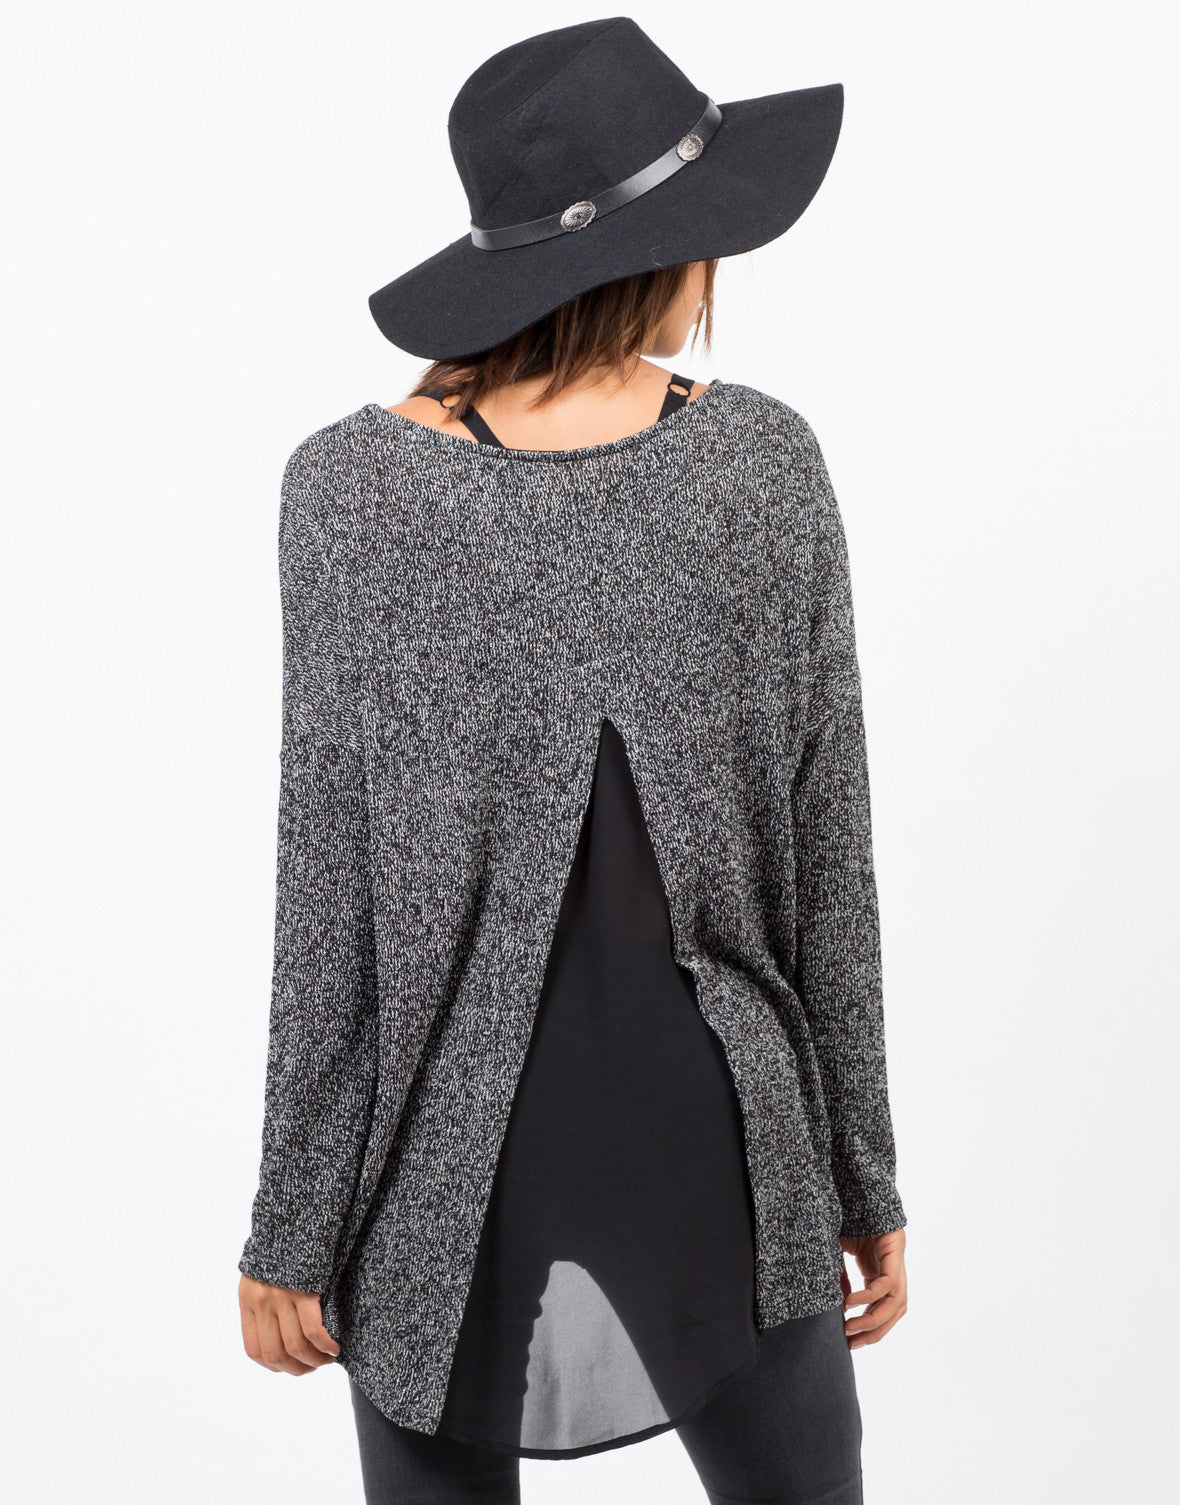 Back View of Sweater Chiffon Top